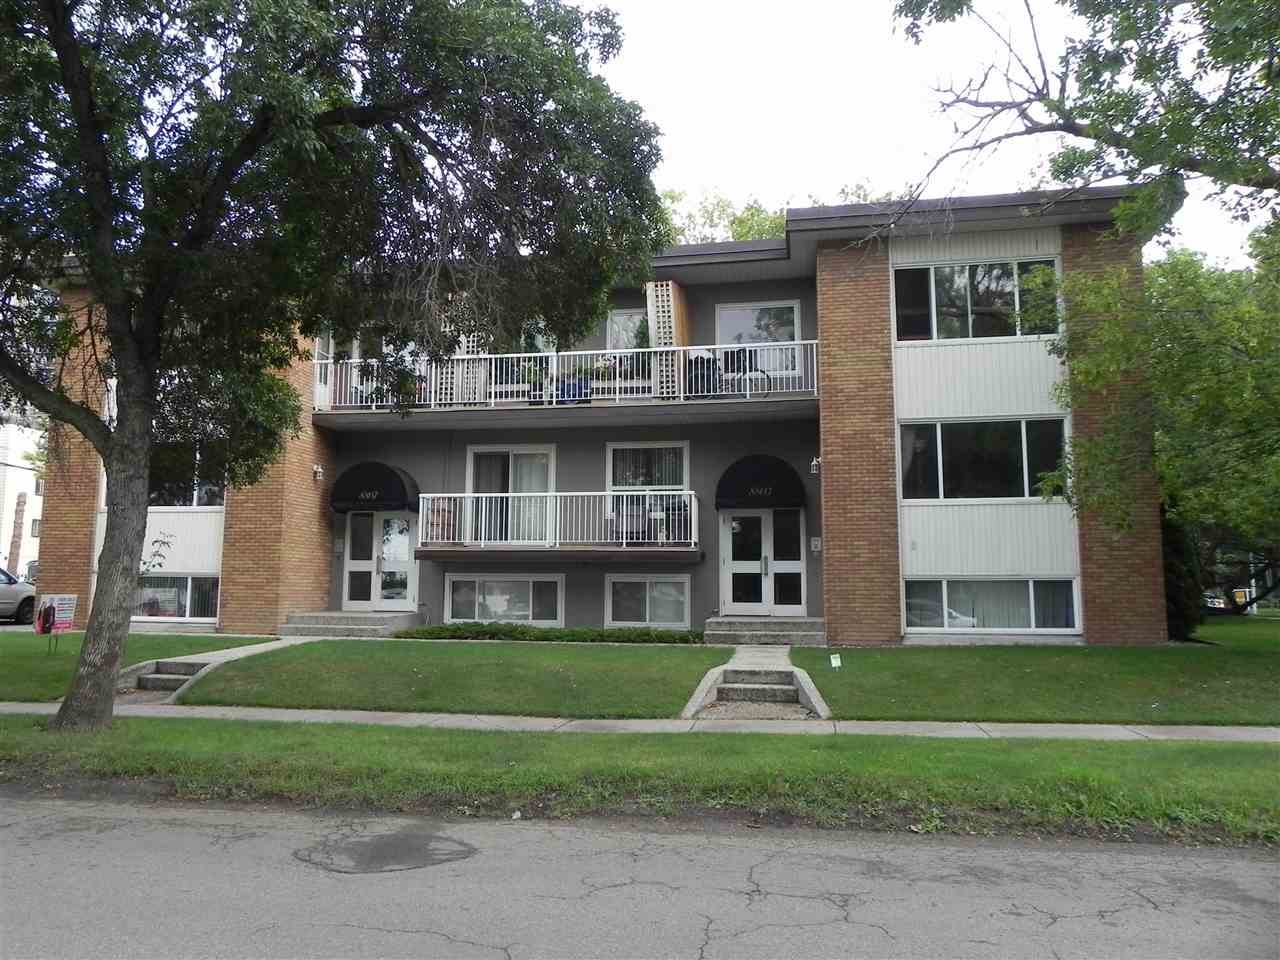 Close to the entertainment and restaurants on Whyte Ave, downtown, river valley, shopping, transportation... This single bedroom condo is located for the active home owner that's tough to beat. On the second floor corner of the building it has windows on three sides and is away from the street. Upgraded and updated the tile and hardwood floors have been immaculately maintained as with the whole home. The large living room faces west, the bedroom on the east side of the unit ensures ensures a quiet sanctuary. Plenty of in suite storage. This feels more like a community than a building, a home where all the owners know each other. The ideal home for the active, that want a community feeling, close to everything.